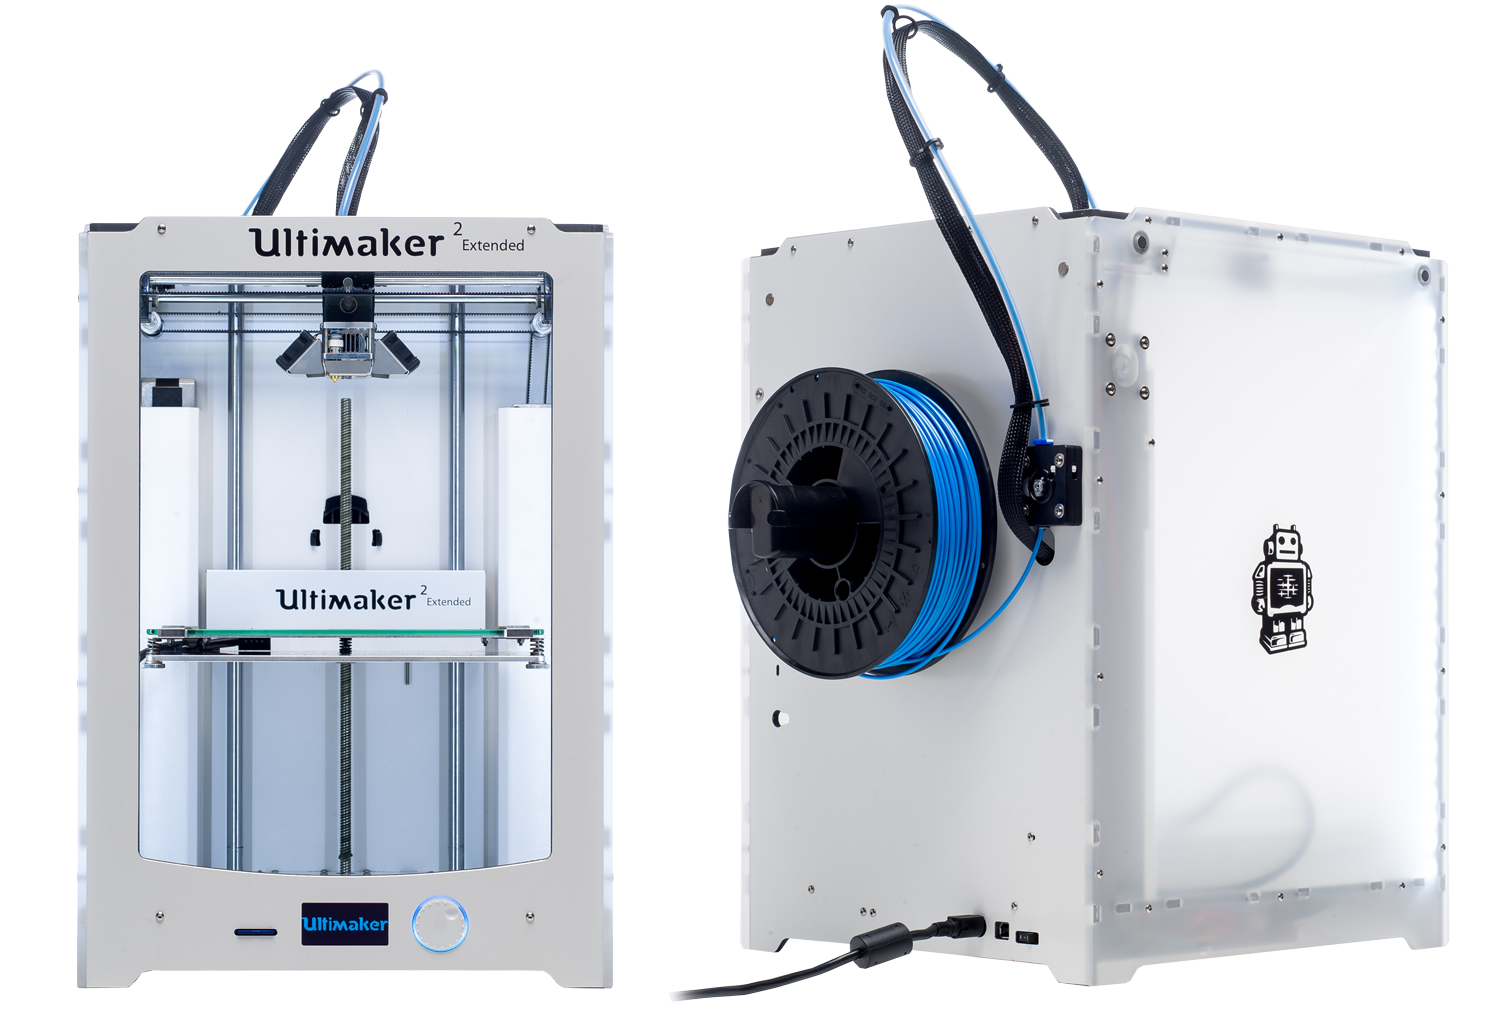 The Ultimaker Extended